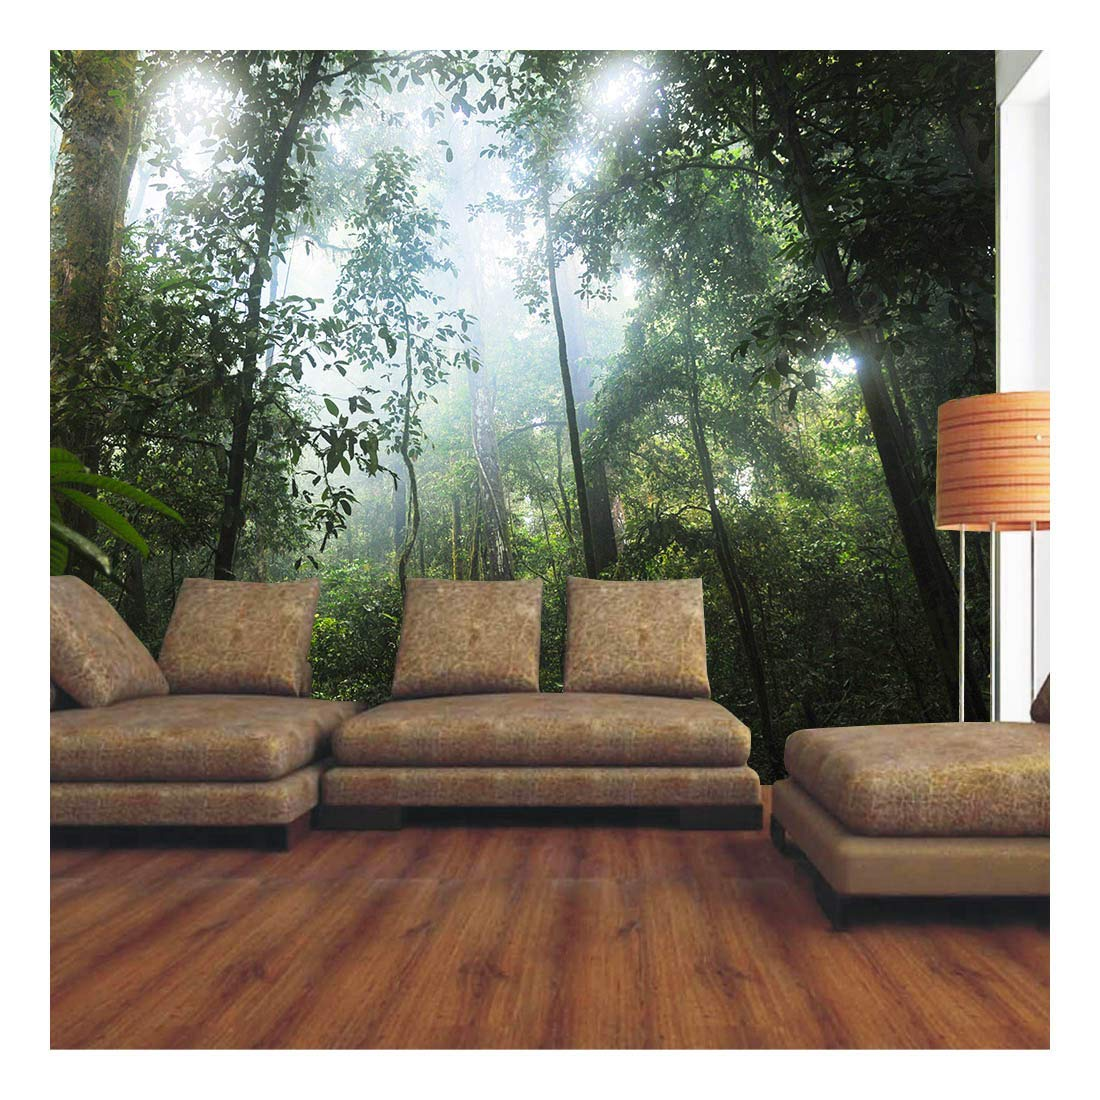 wallpaper murals with trees amazon co ukforest green tropical tree plant photo wallpaper mural home bedroom decoration